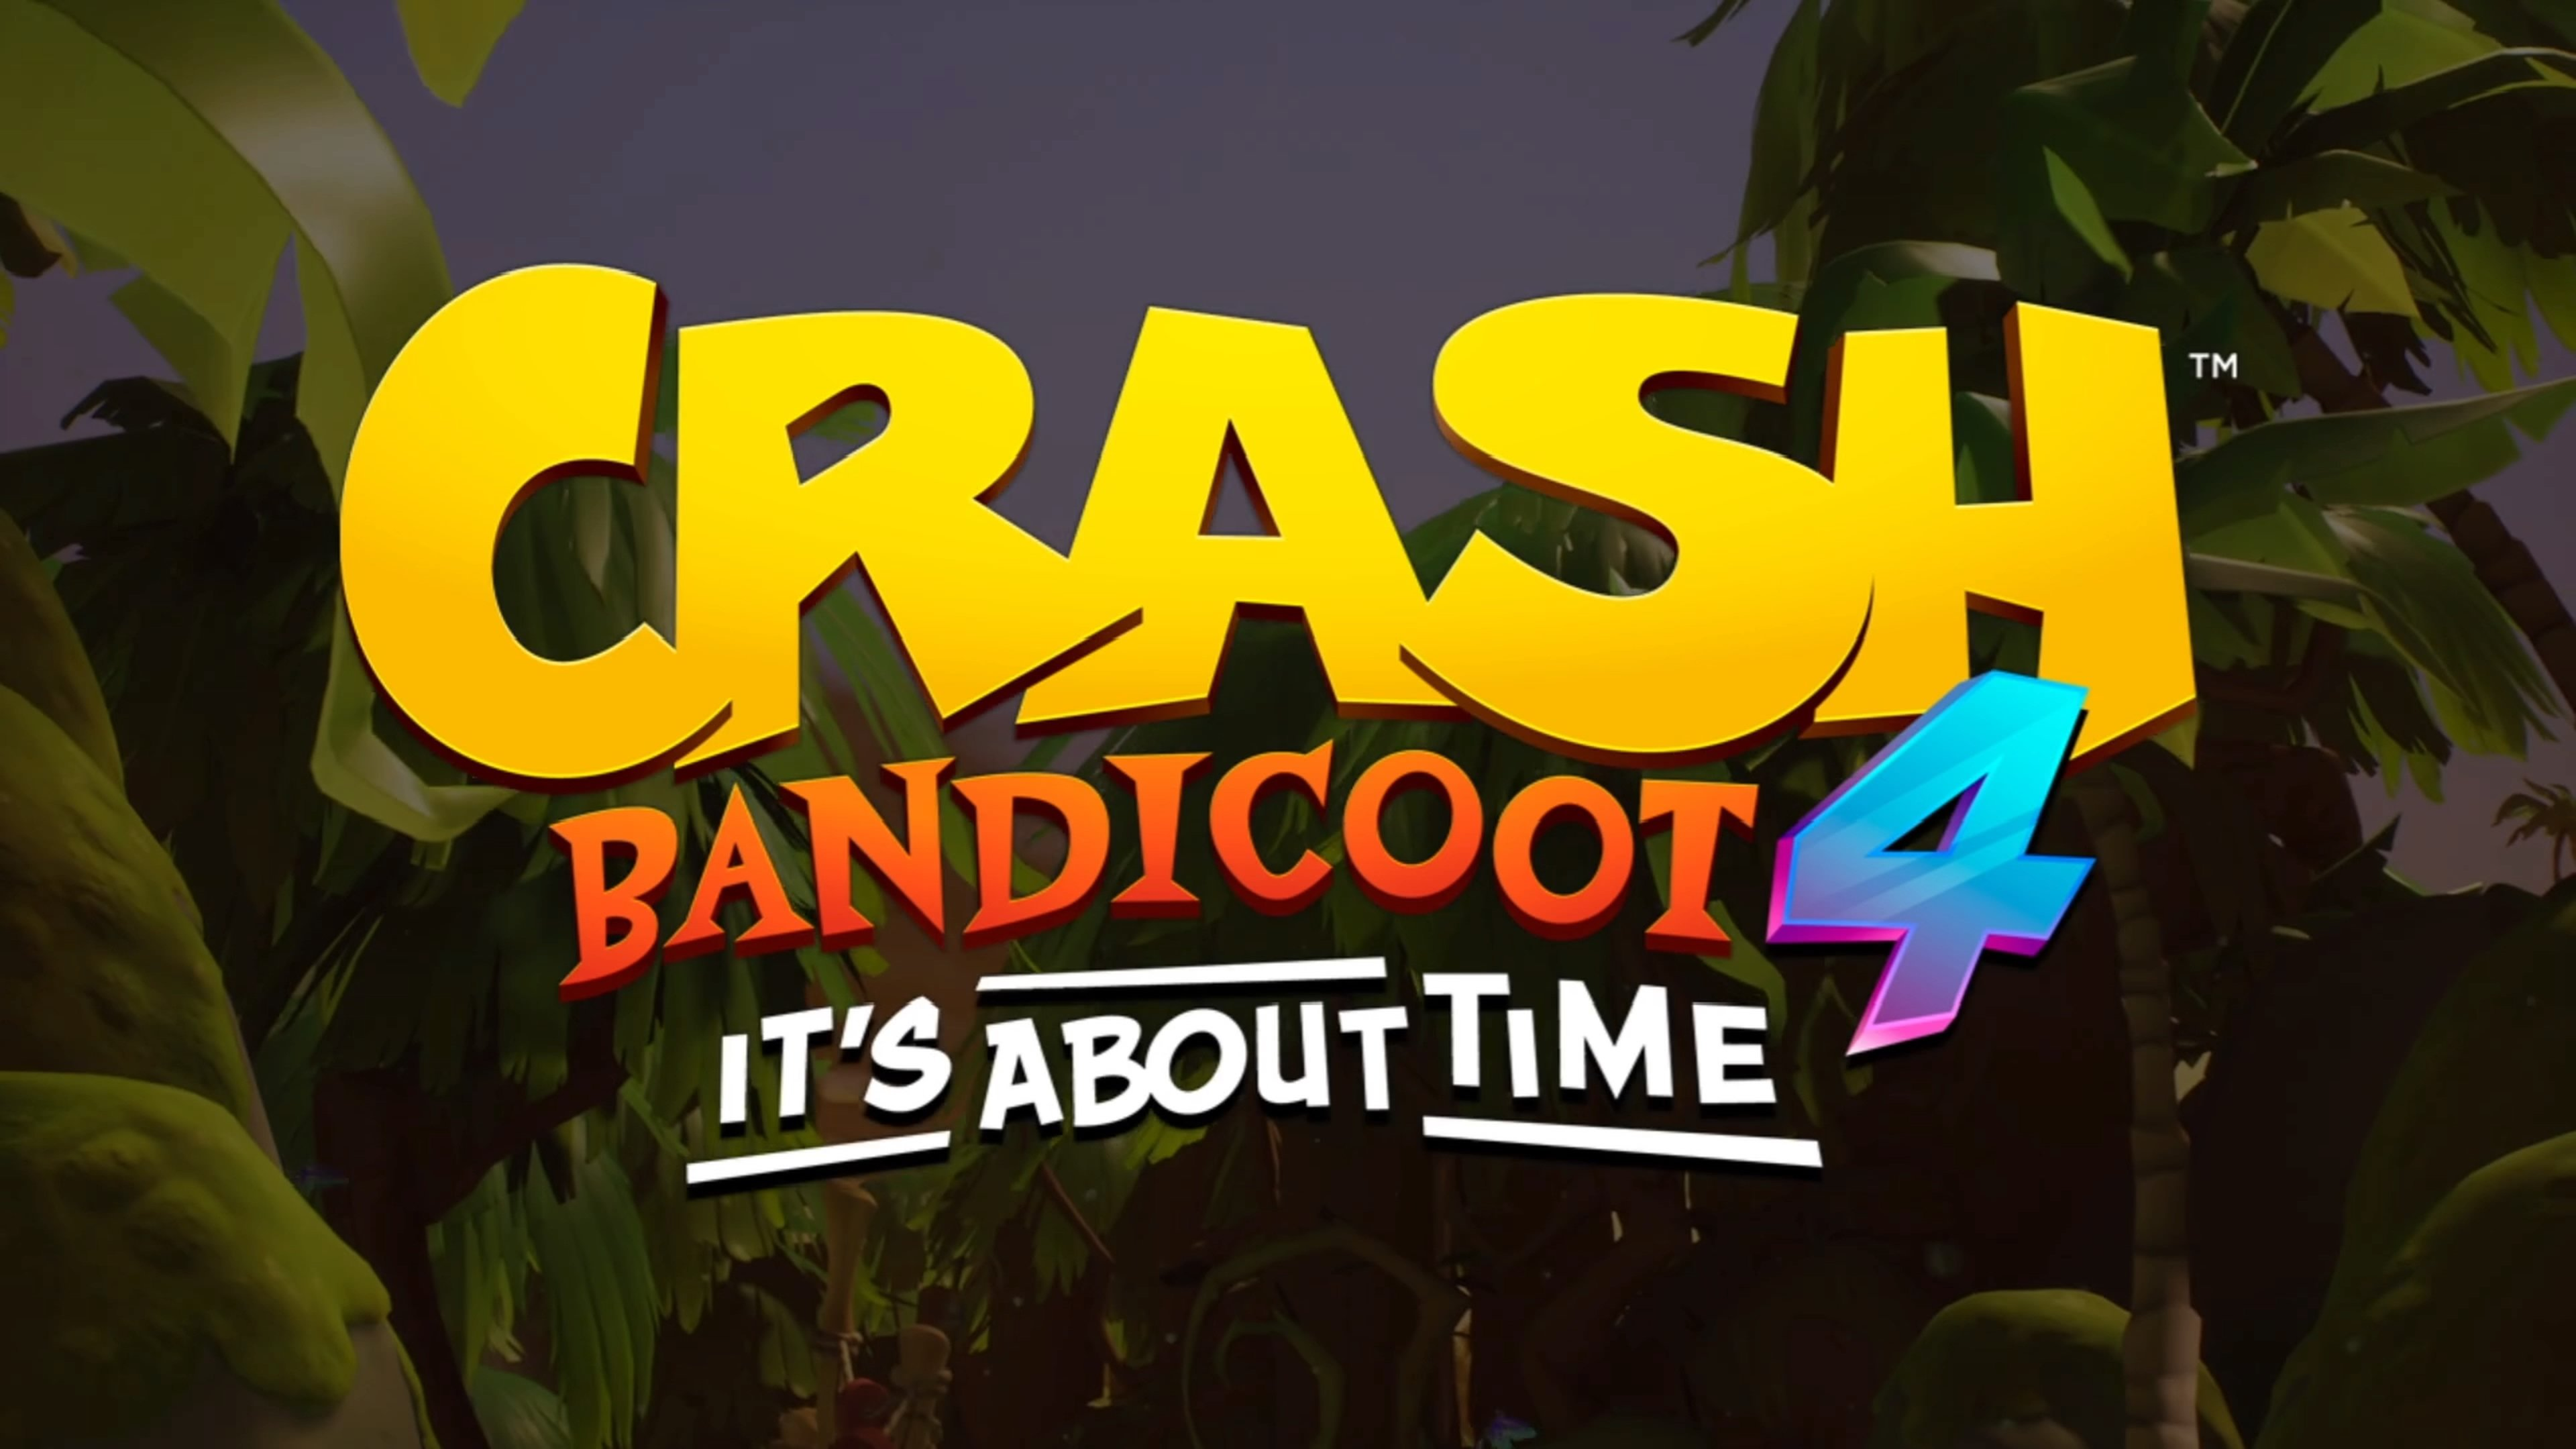 Crash bandicoot 4 it's about time switch release date ps5 xbox series x s